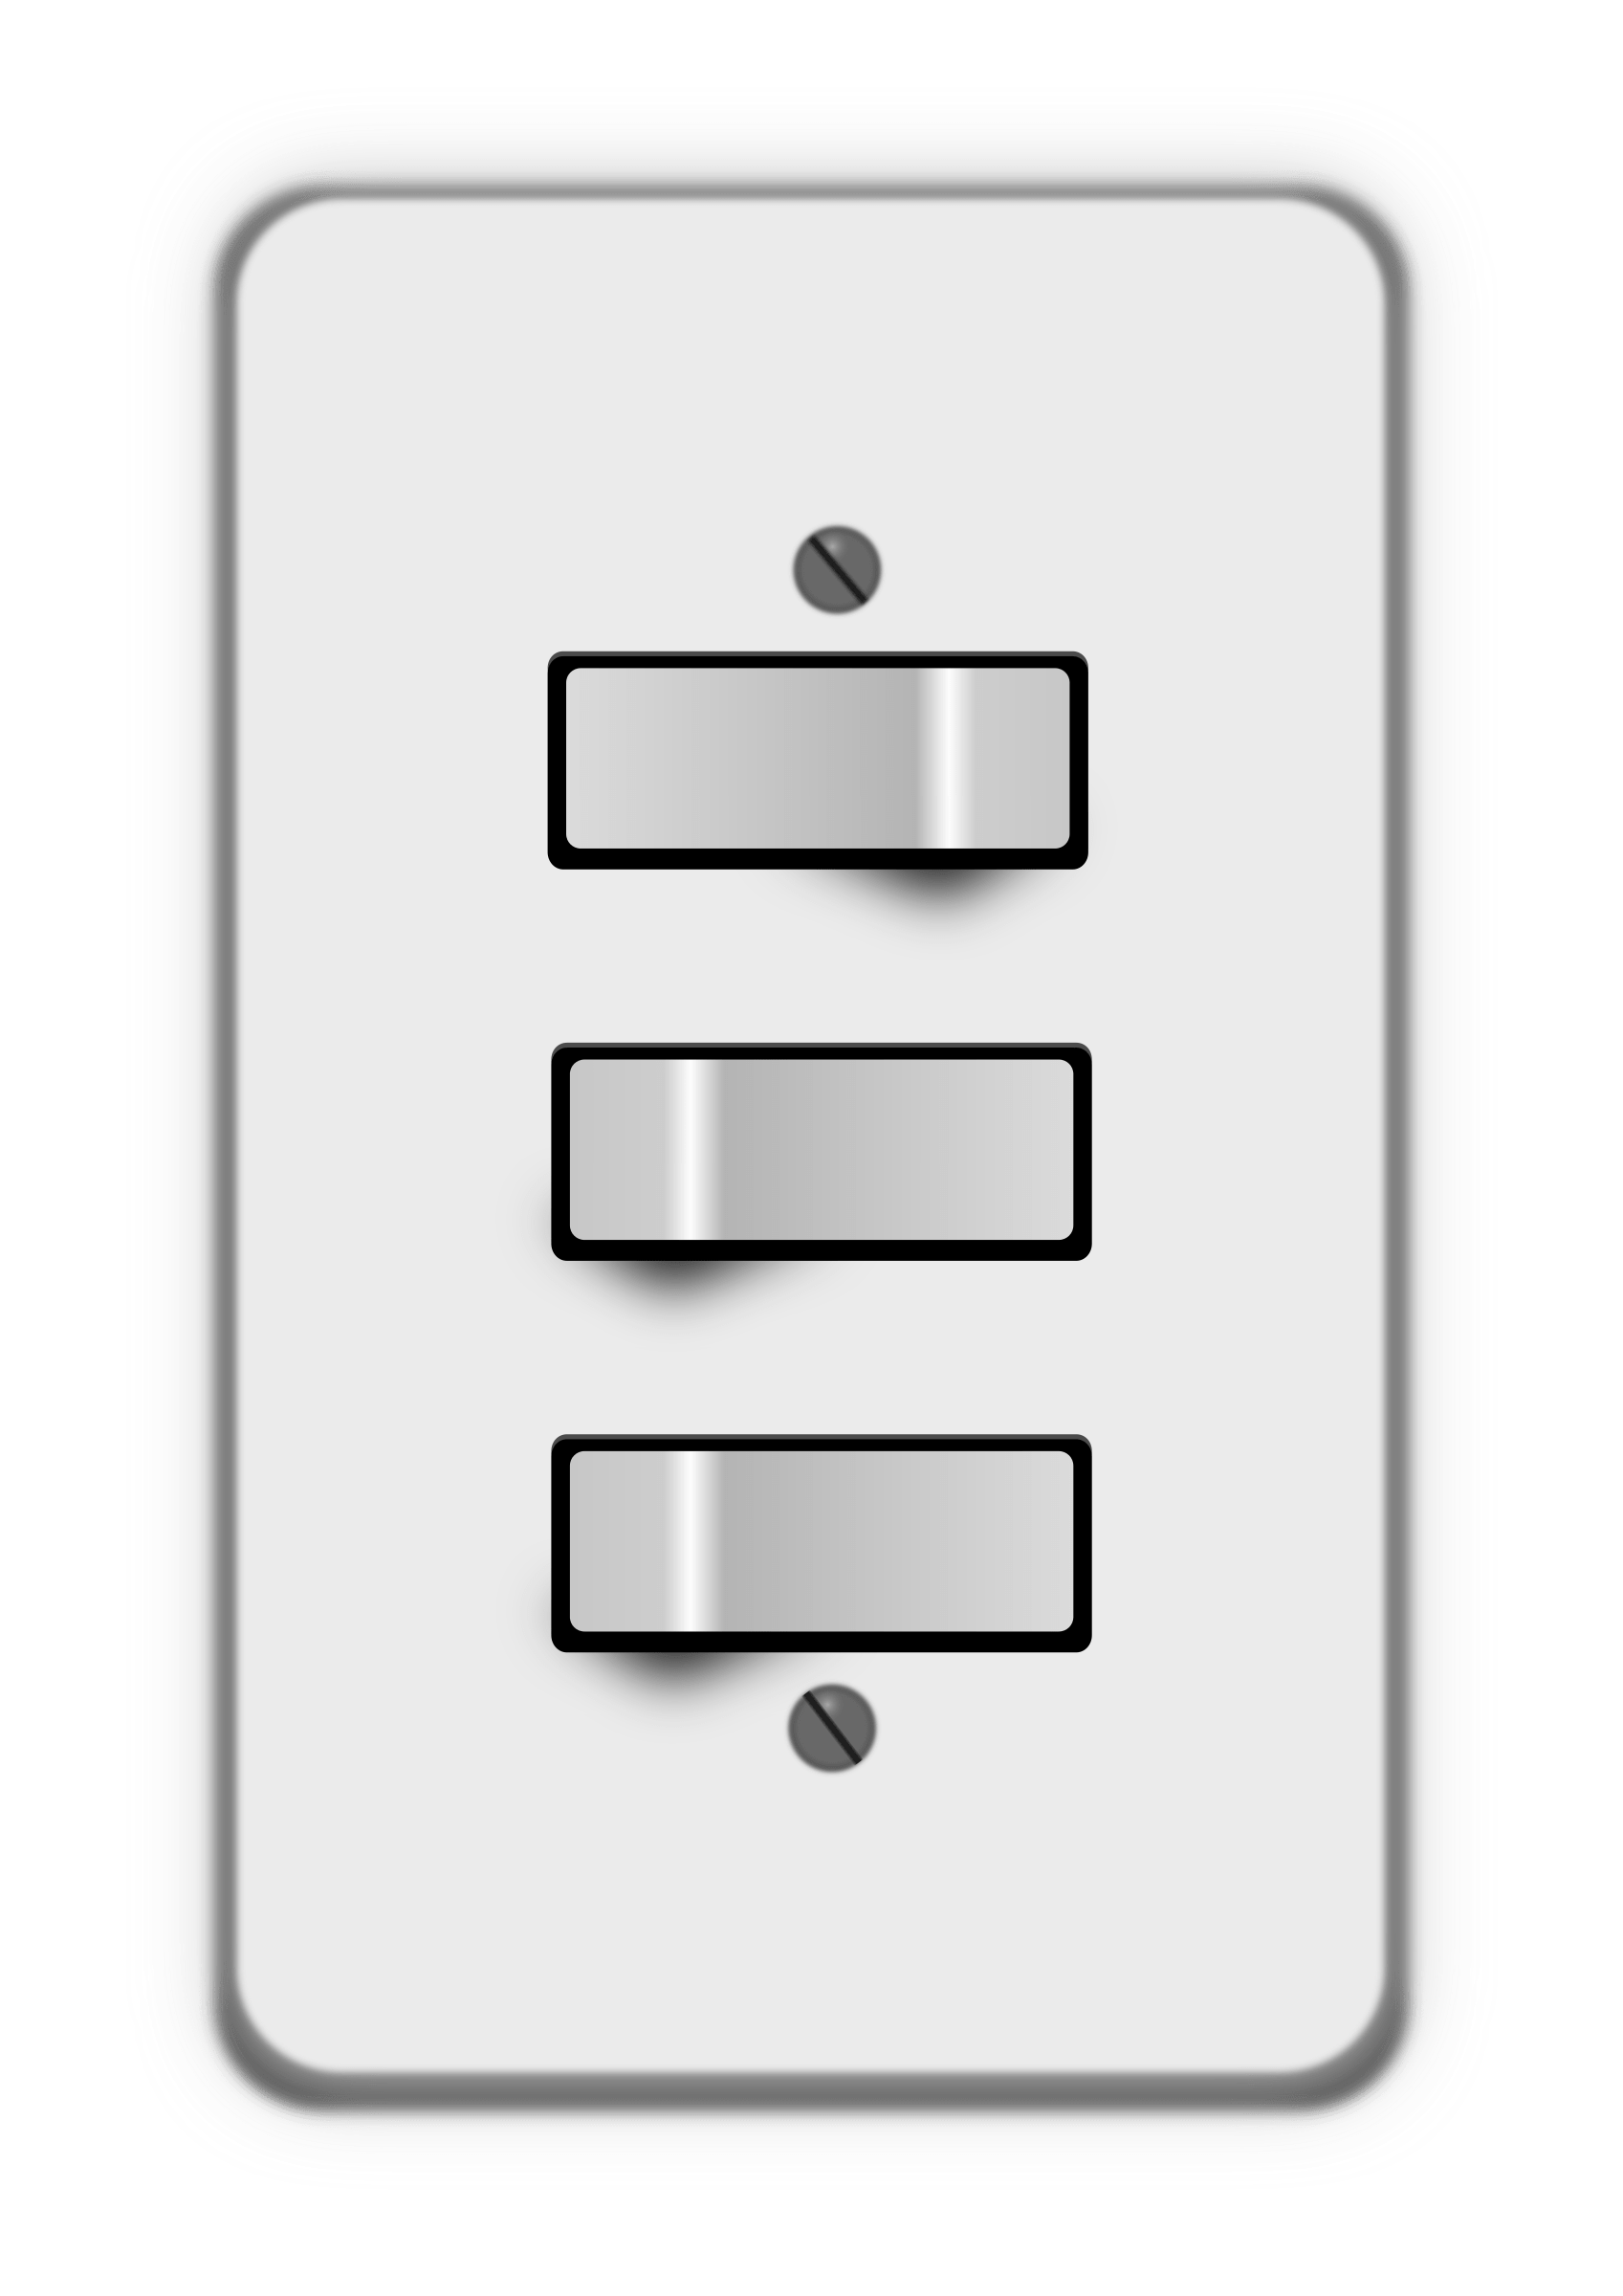 Light Switch Off Clipart Clipart Light Switch 3 Switches One Off